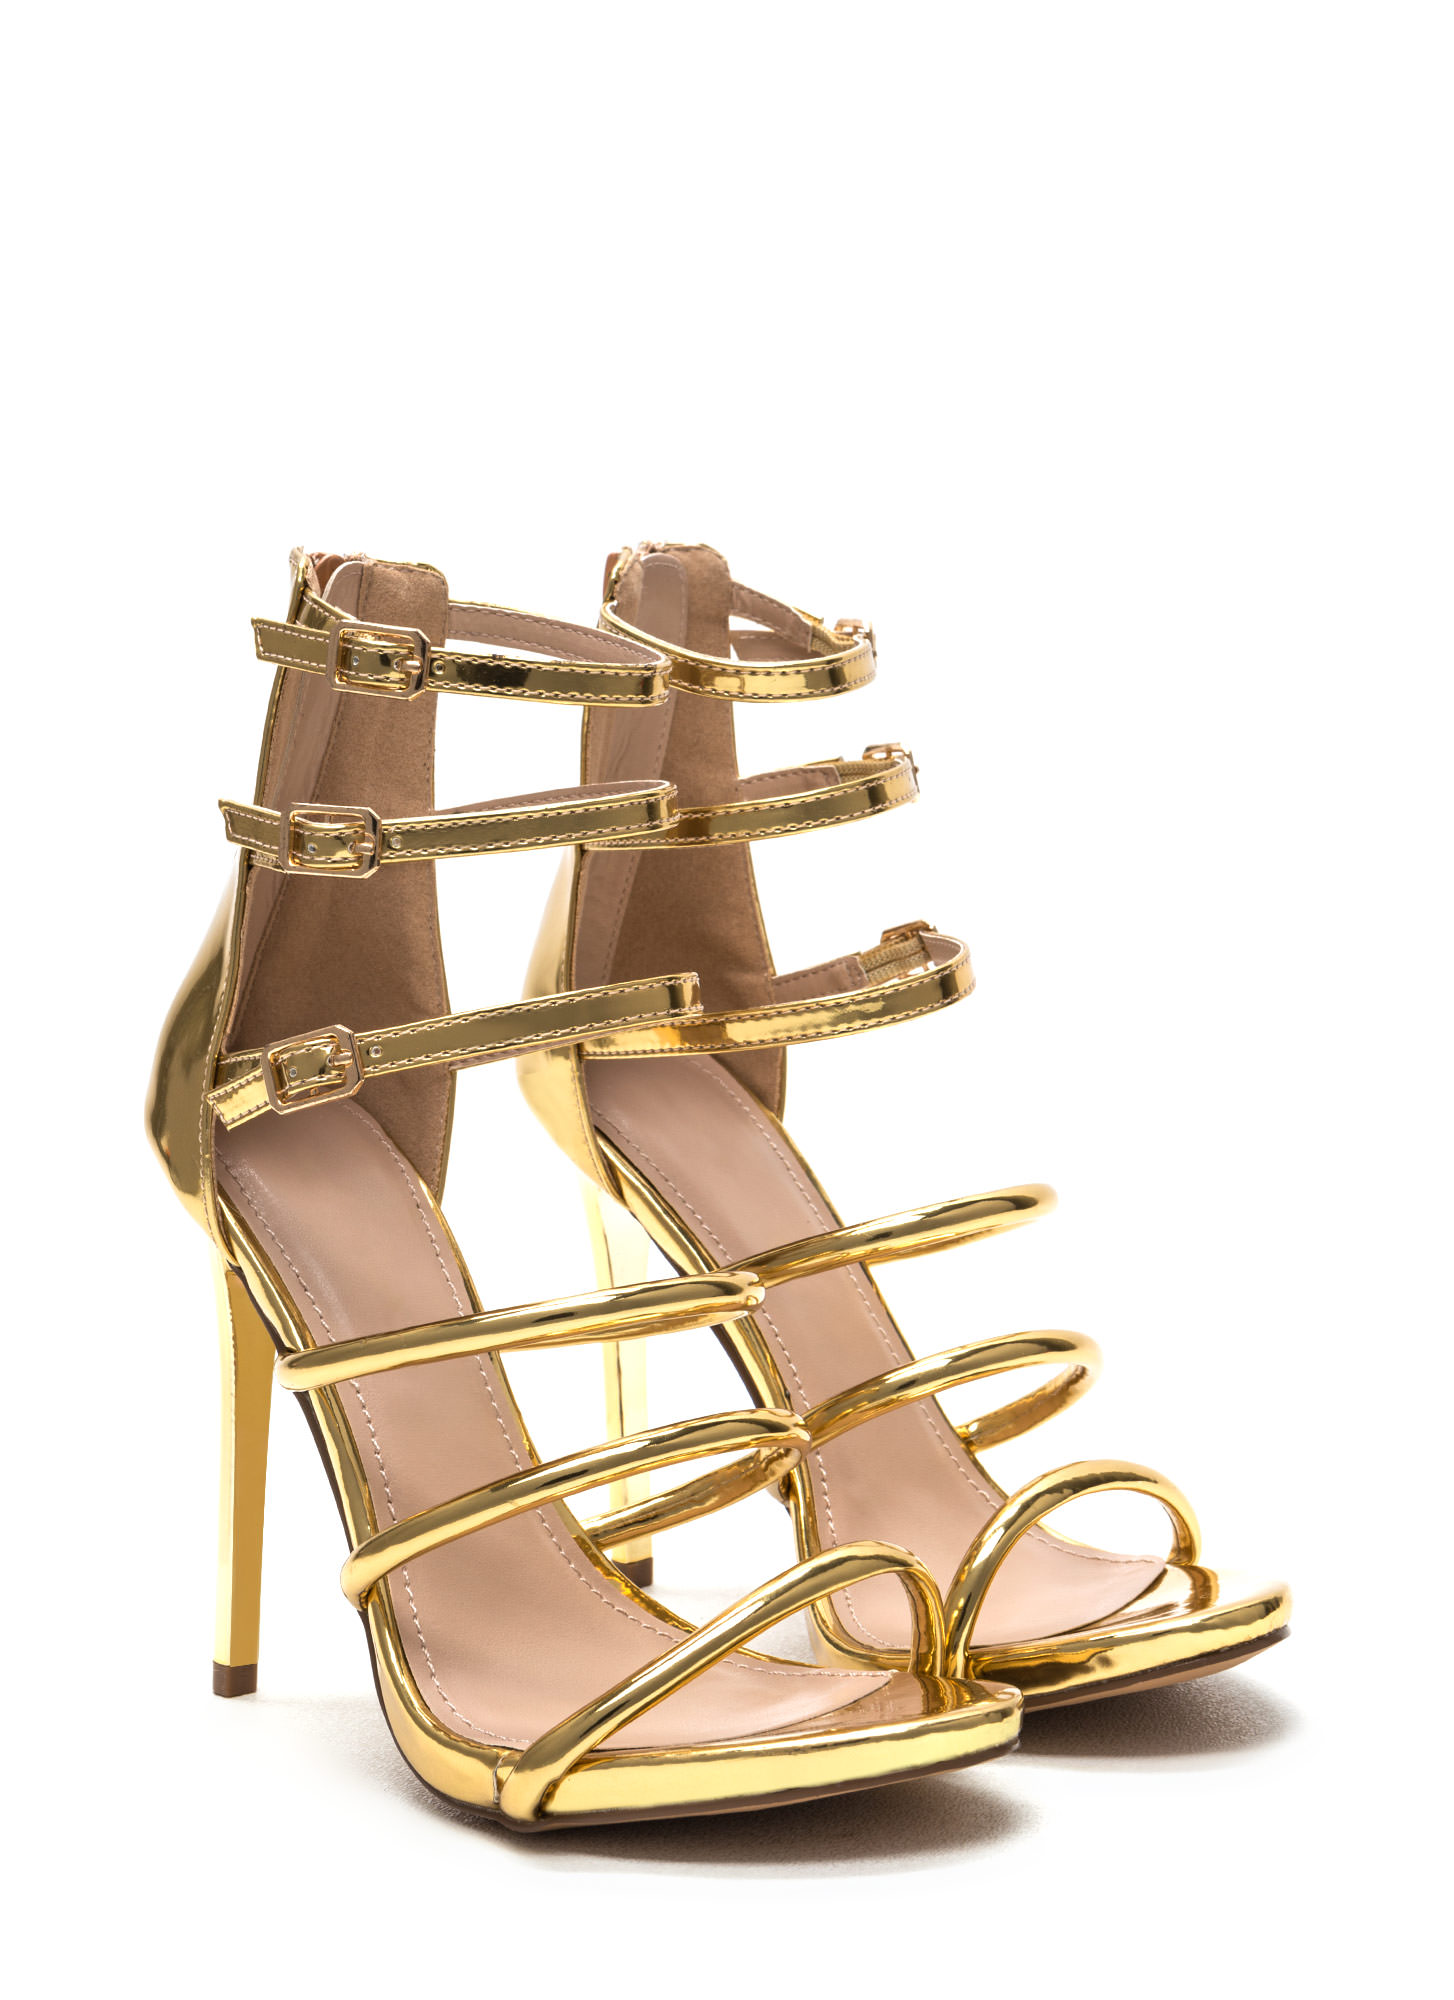 Six 'N Match Caged Metallic Heels GOLD